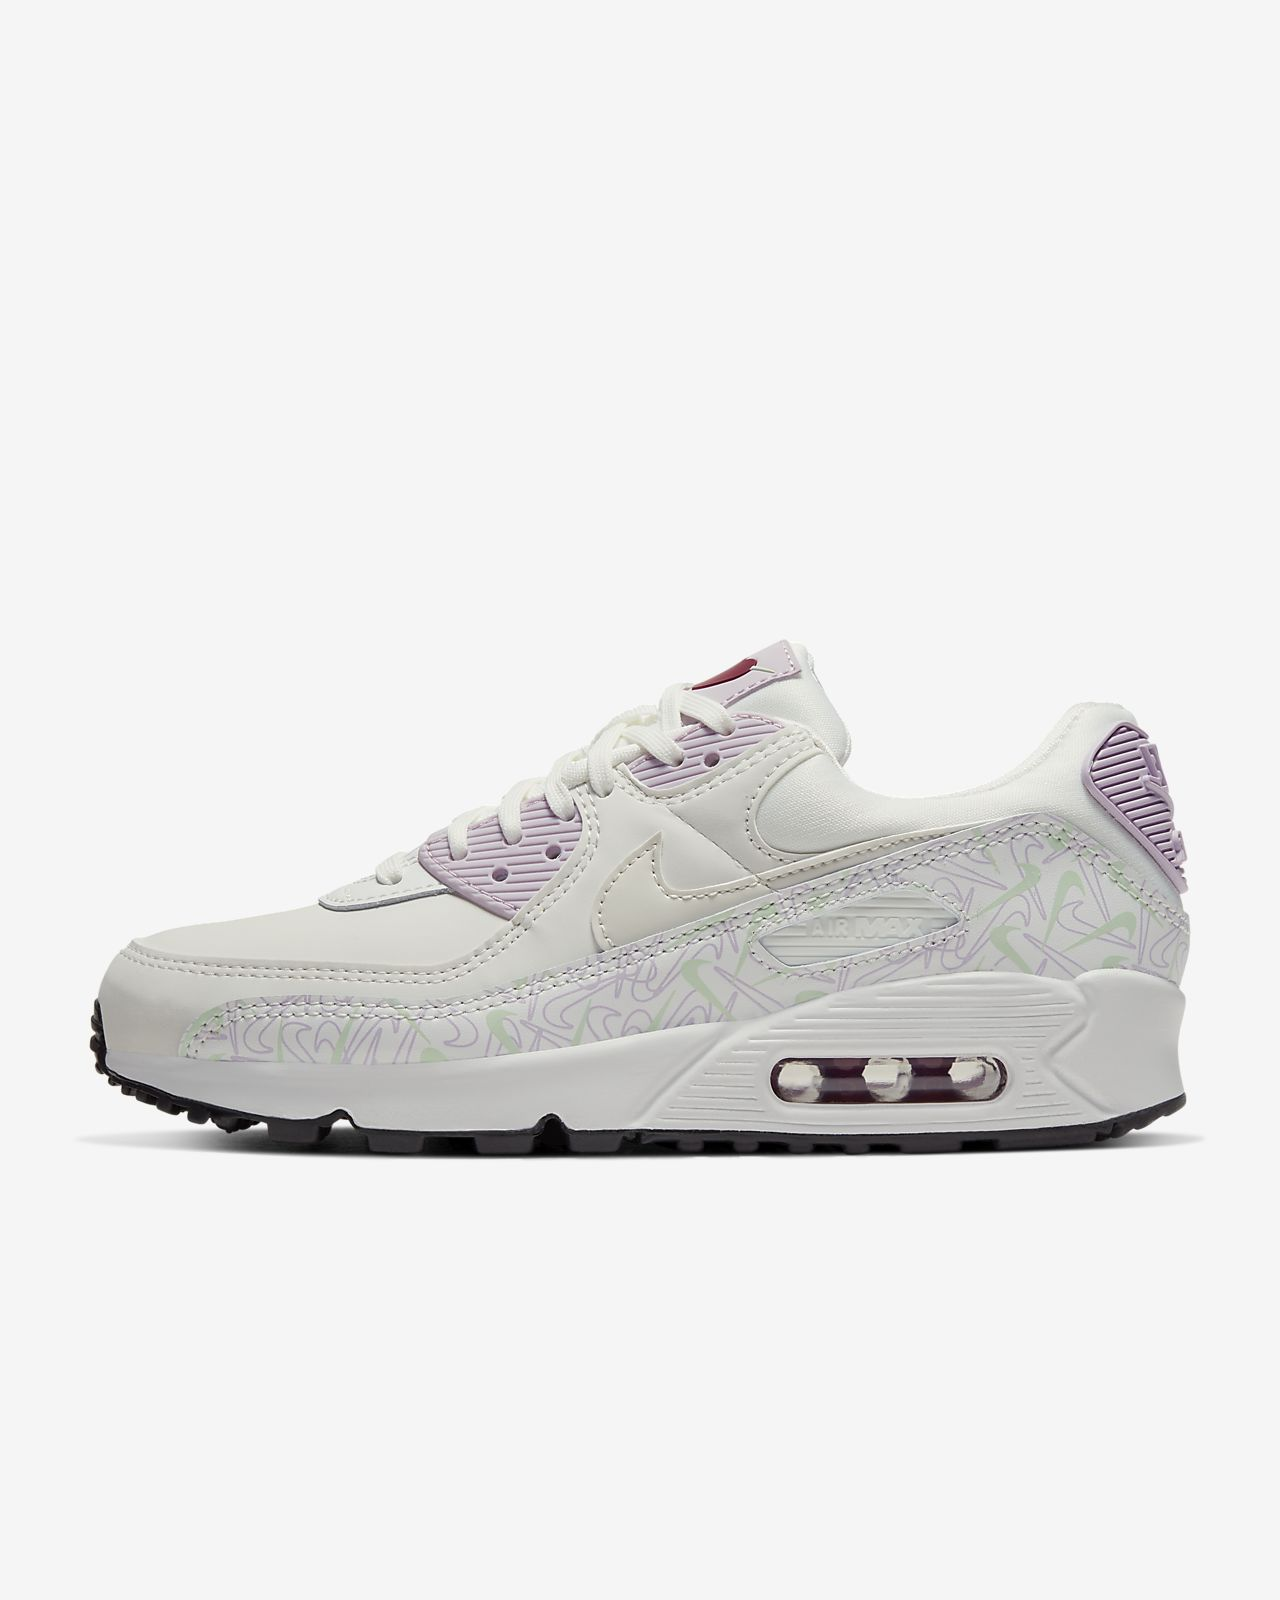 Colorful Nike Womens Air Max 90 Purple Yellow Pink Sneakers